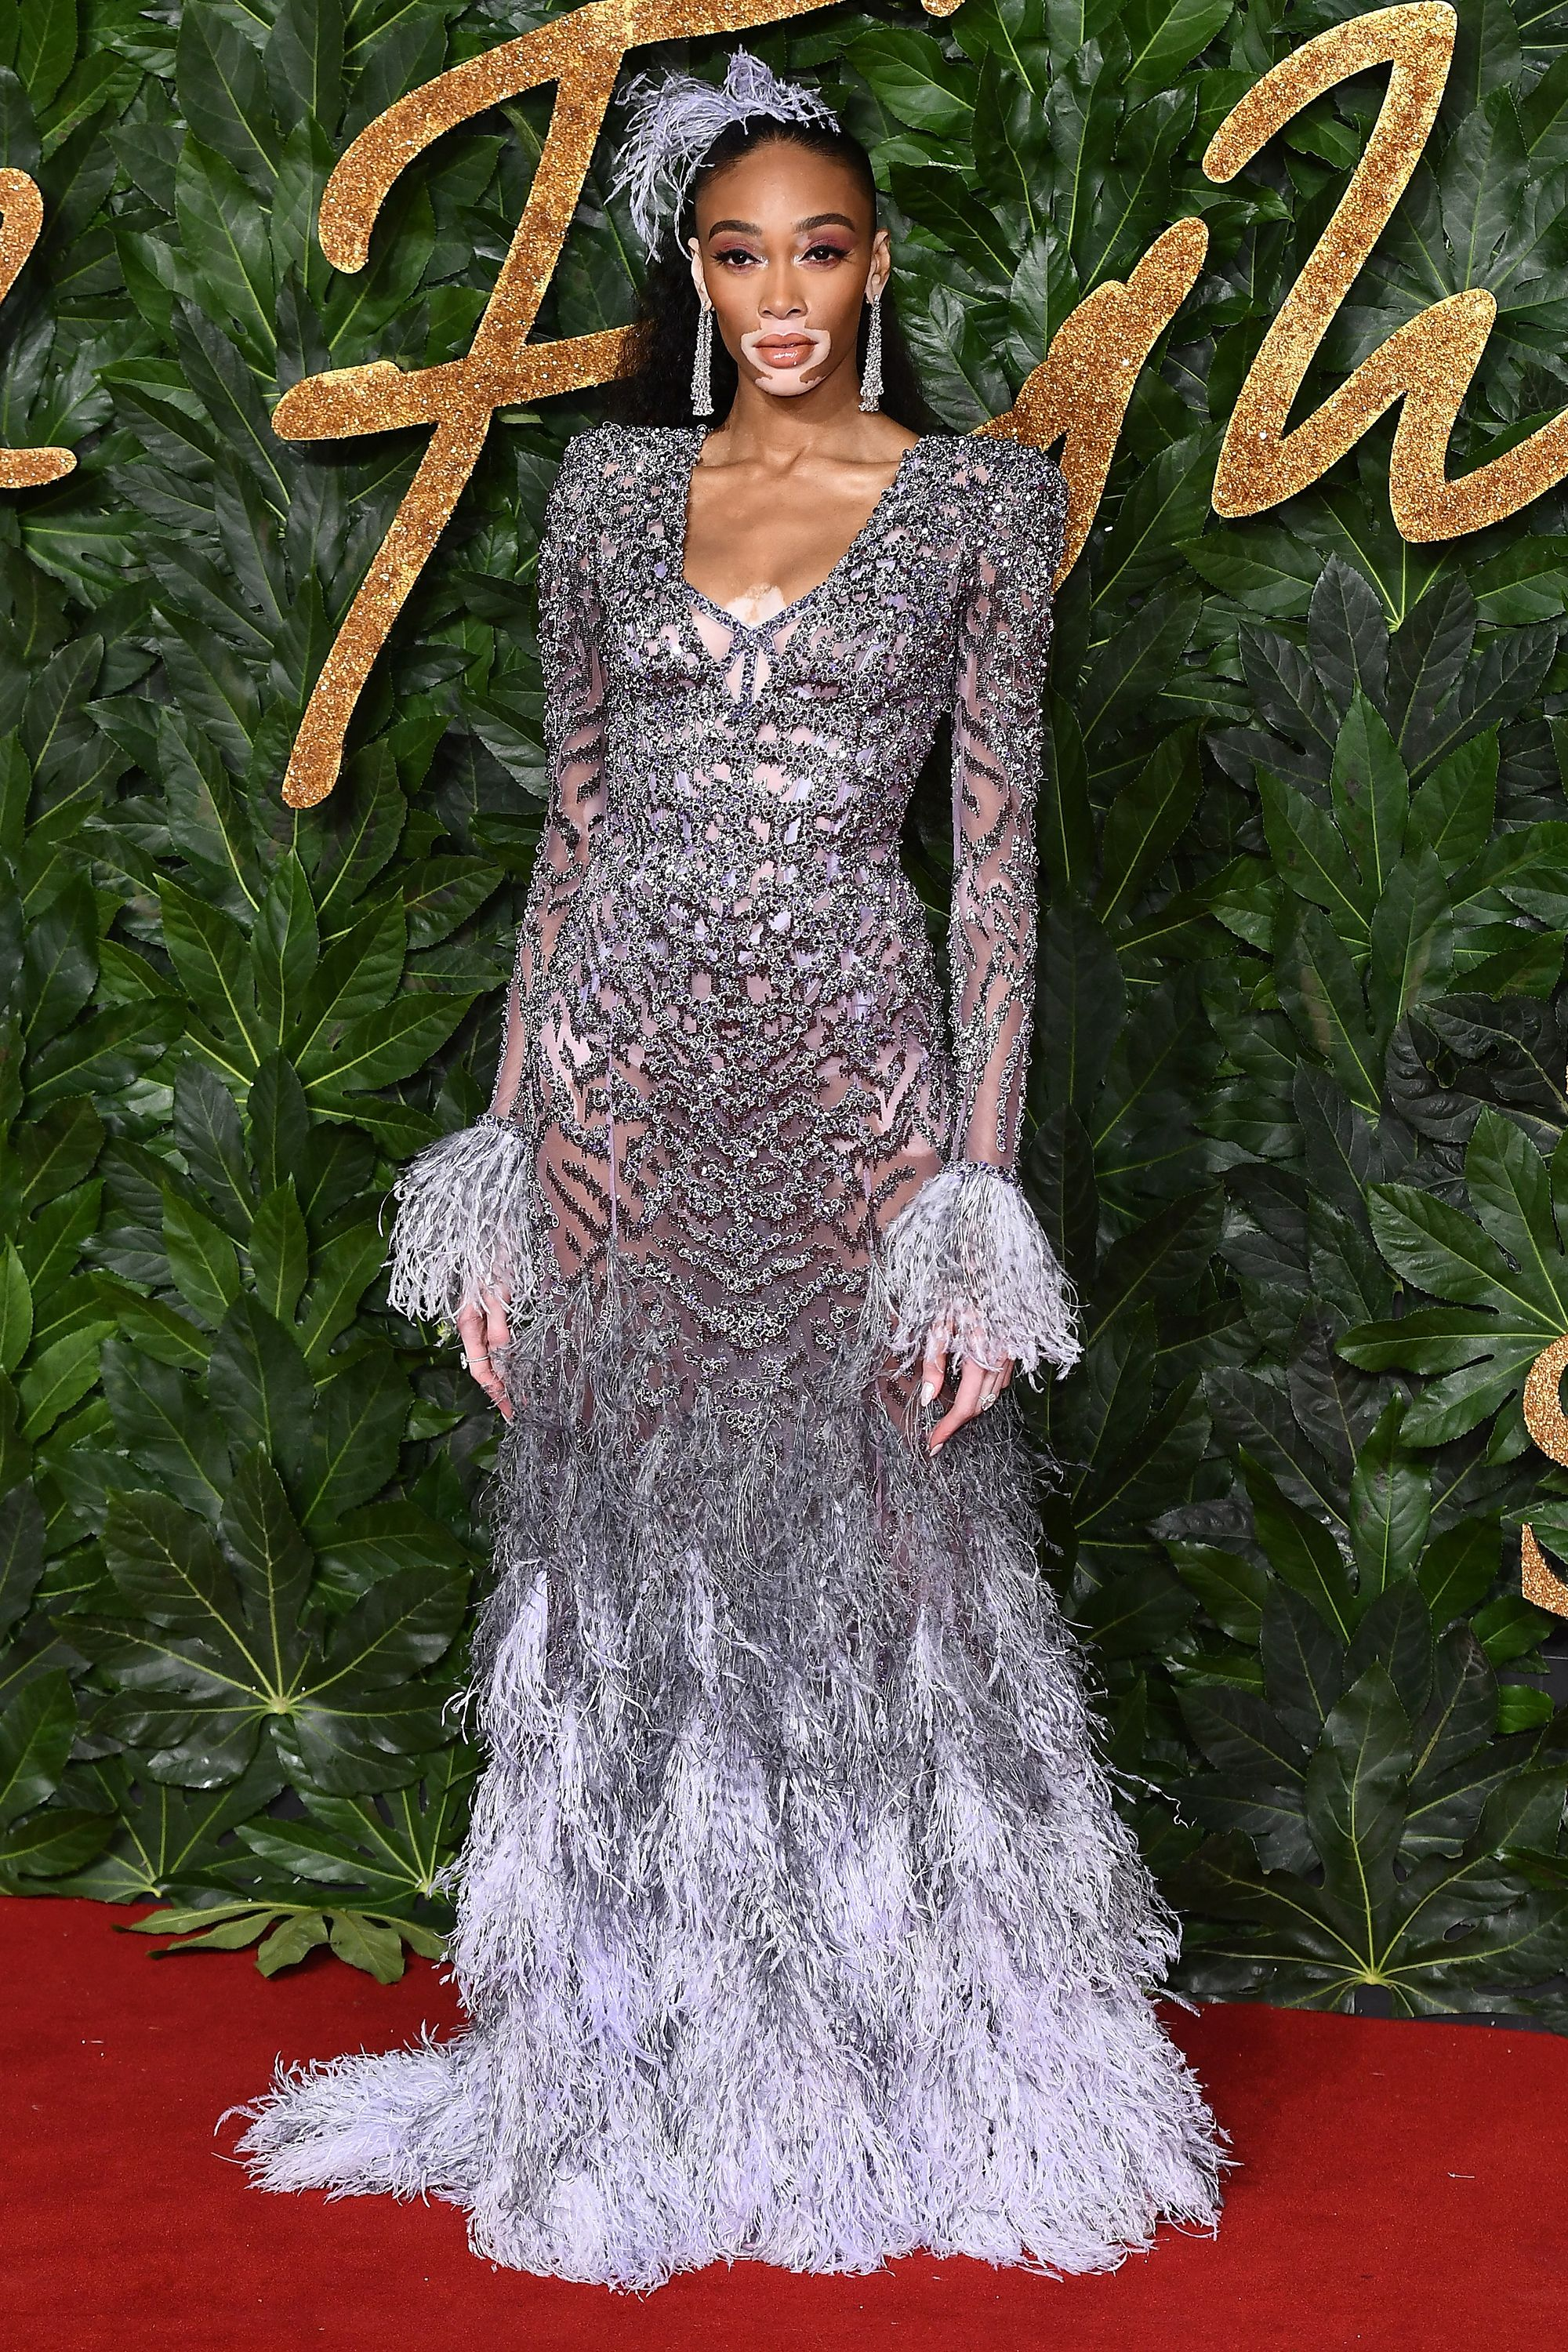 ed7960bf4 The Fashion Awards 2018: See all the red carpet arrivals